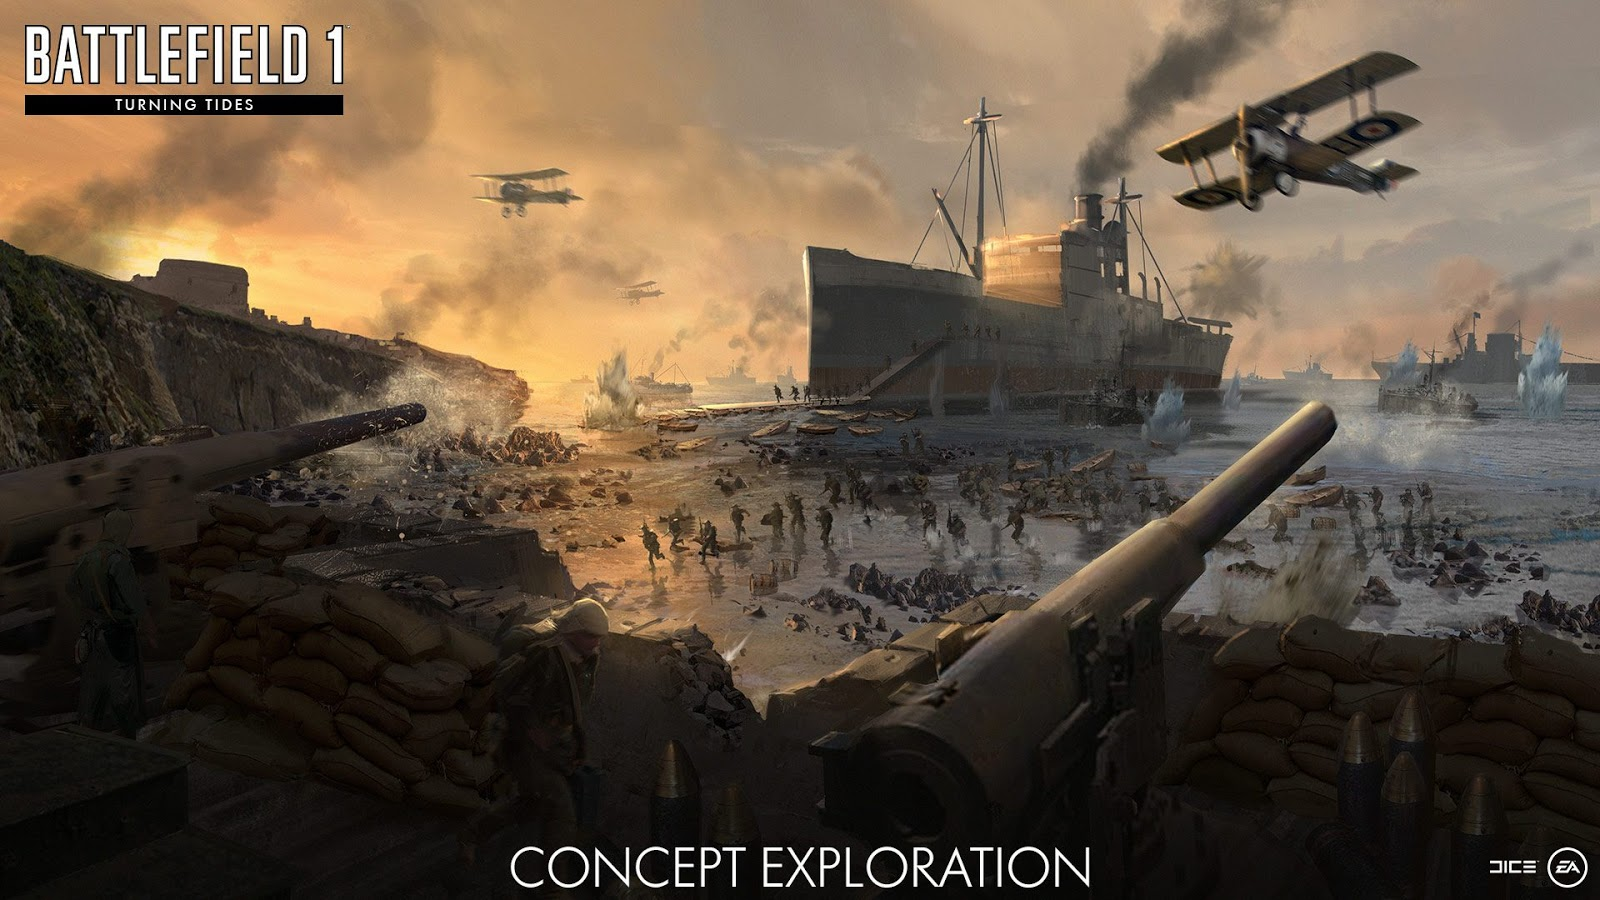 Battlefield 1 Turning Tides New Expansion For Pcxbox Oneps4 Game Ps4 Achi Baba Get Into The British Big Assault On Gallipoli Peninsula And Join Treacherous Push To Prominent Hilltop